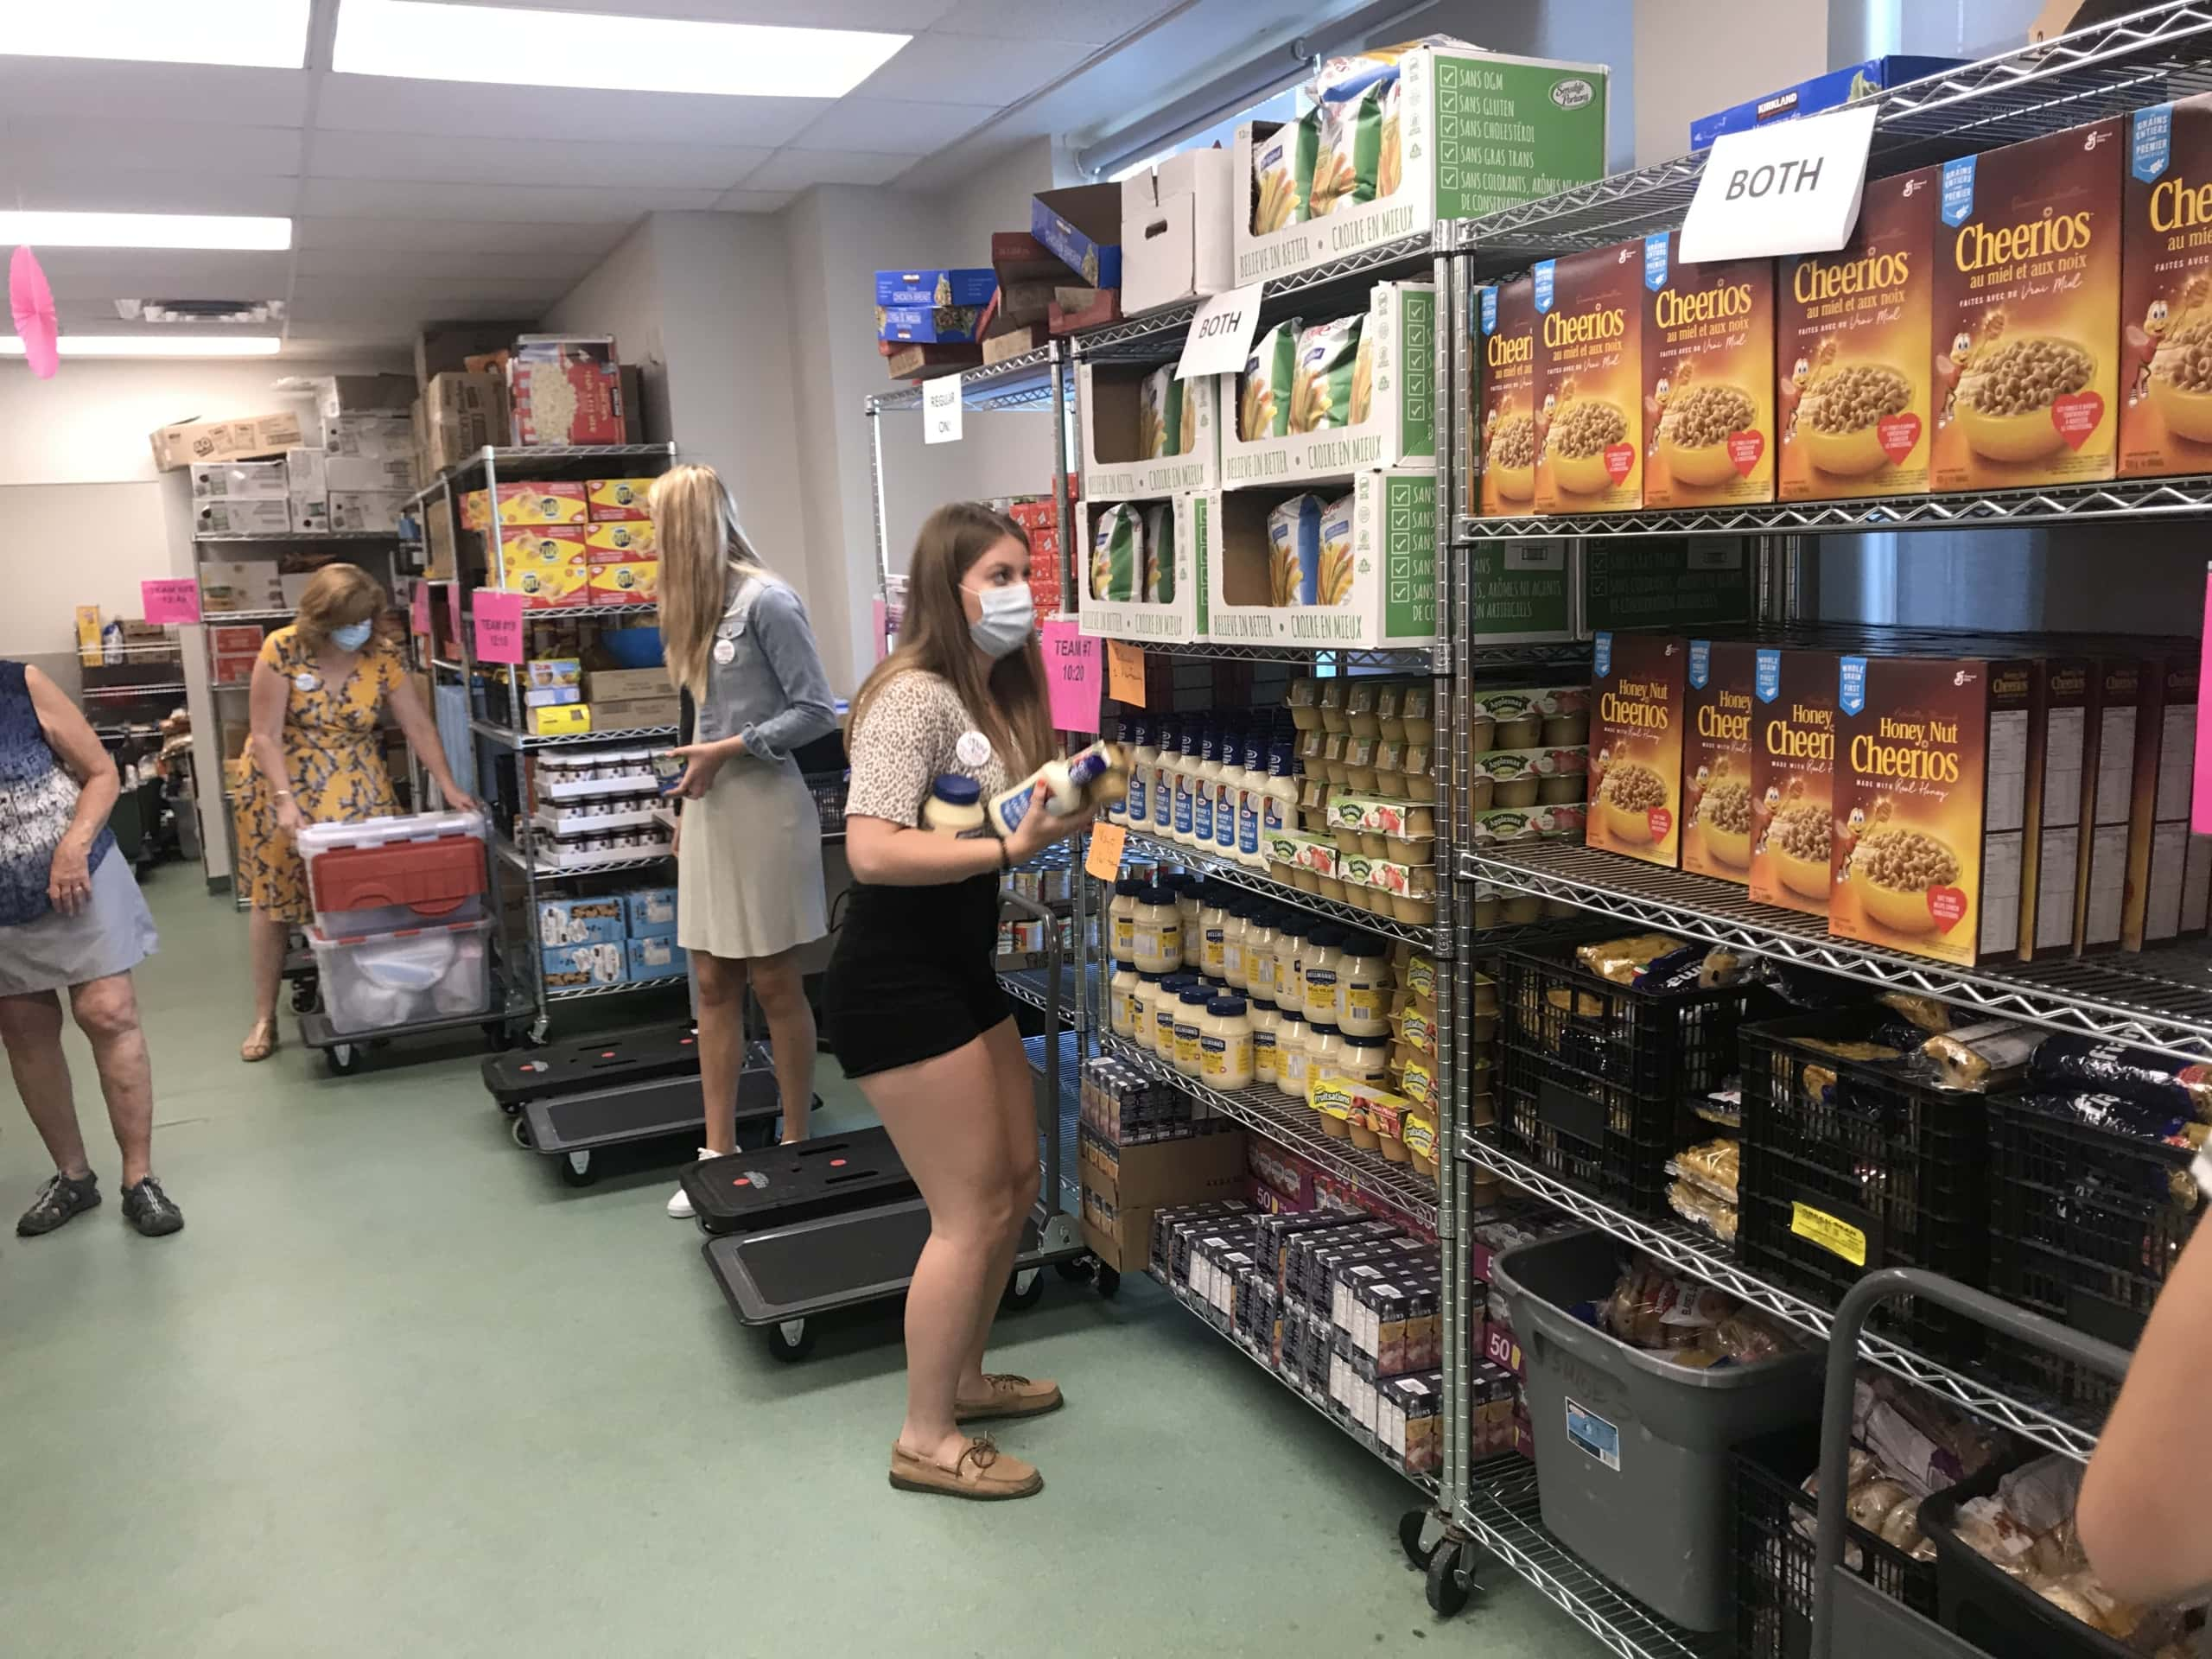 Volunteers at a grocery store select food items for boxes